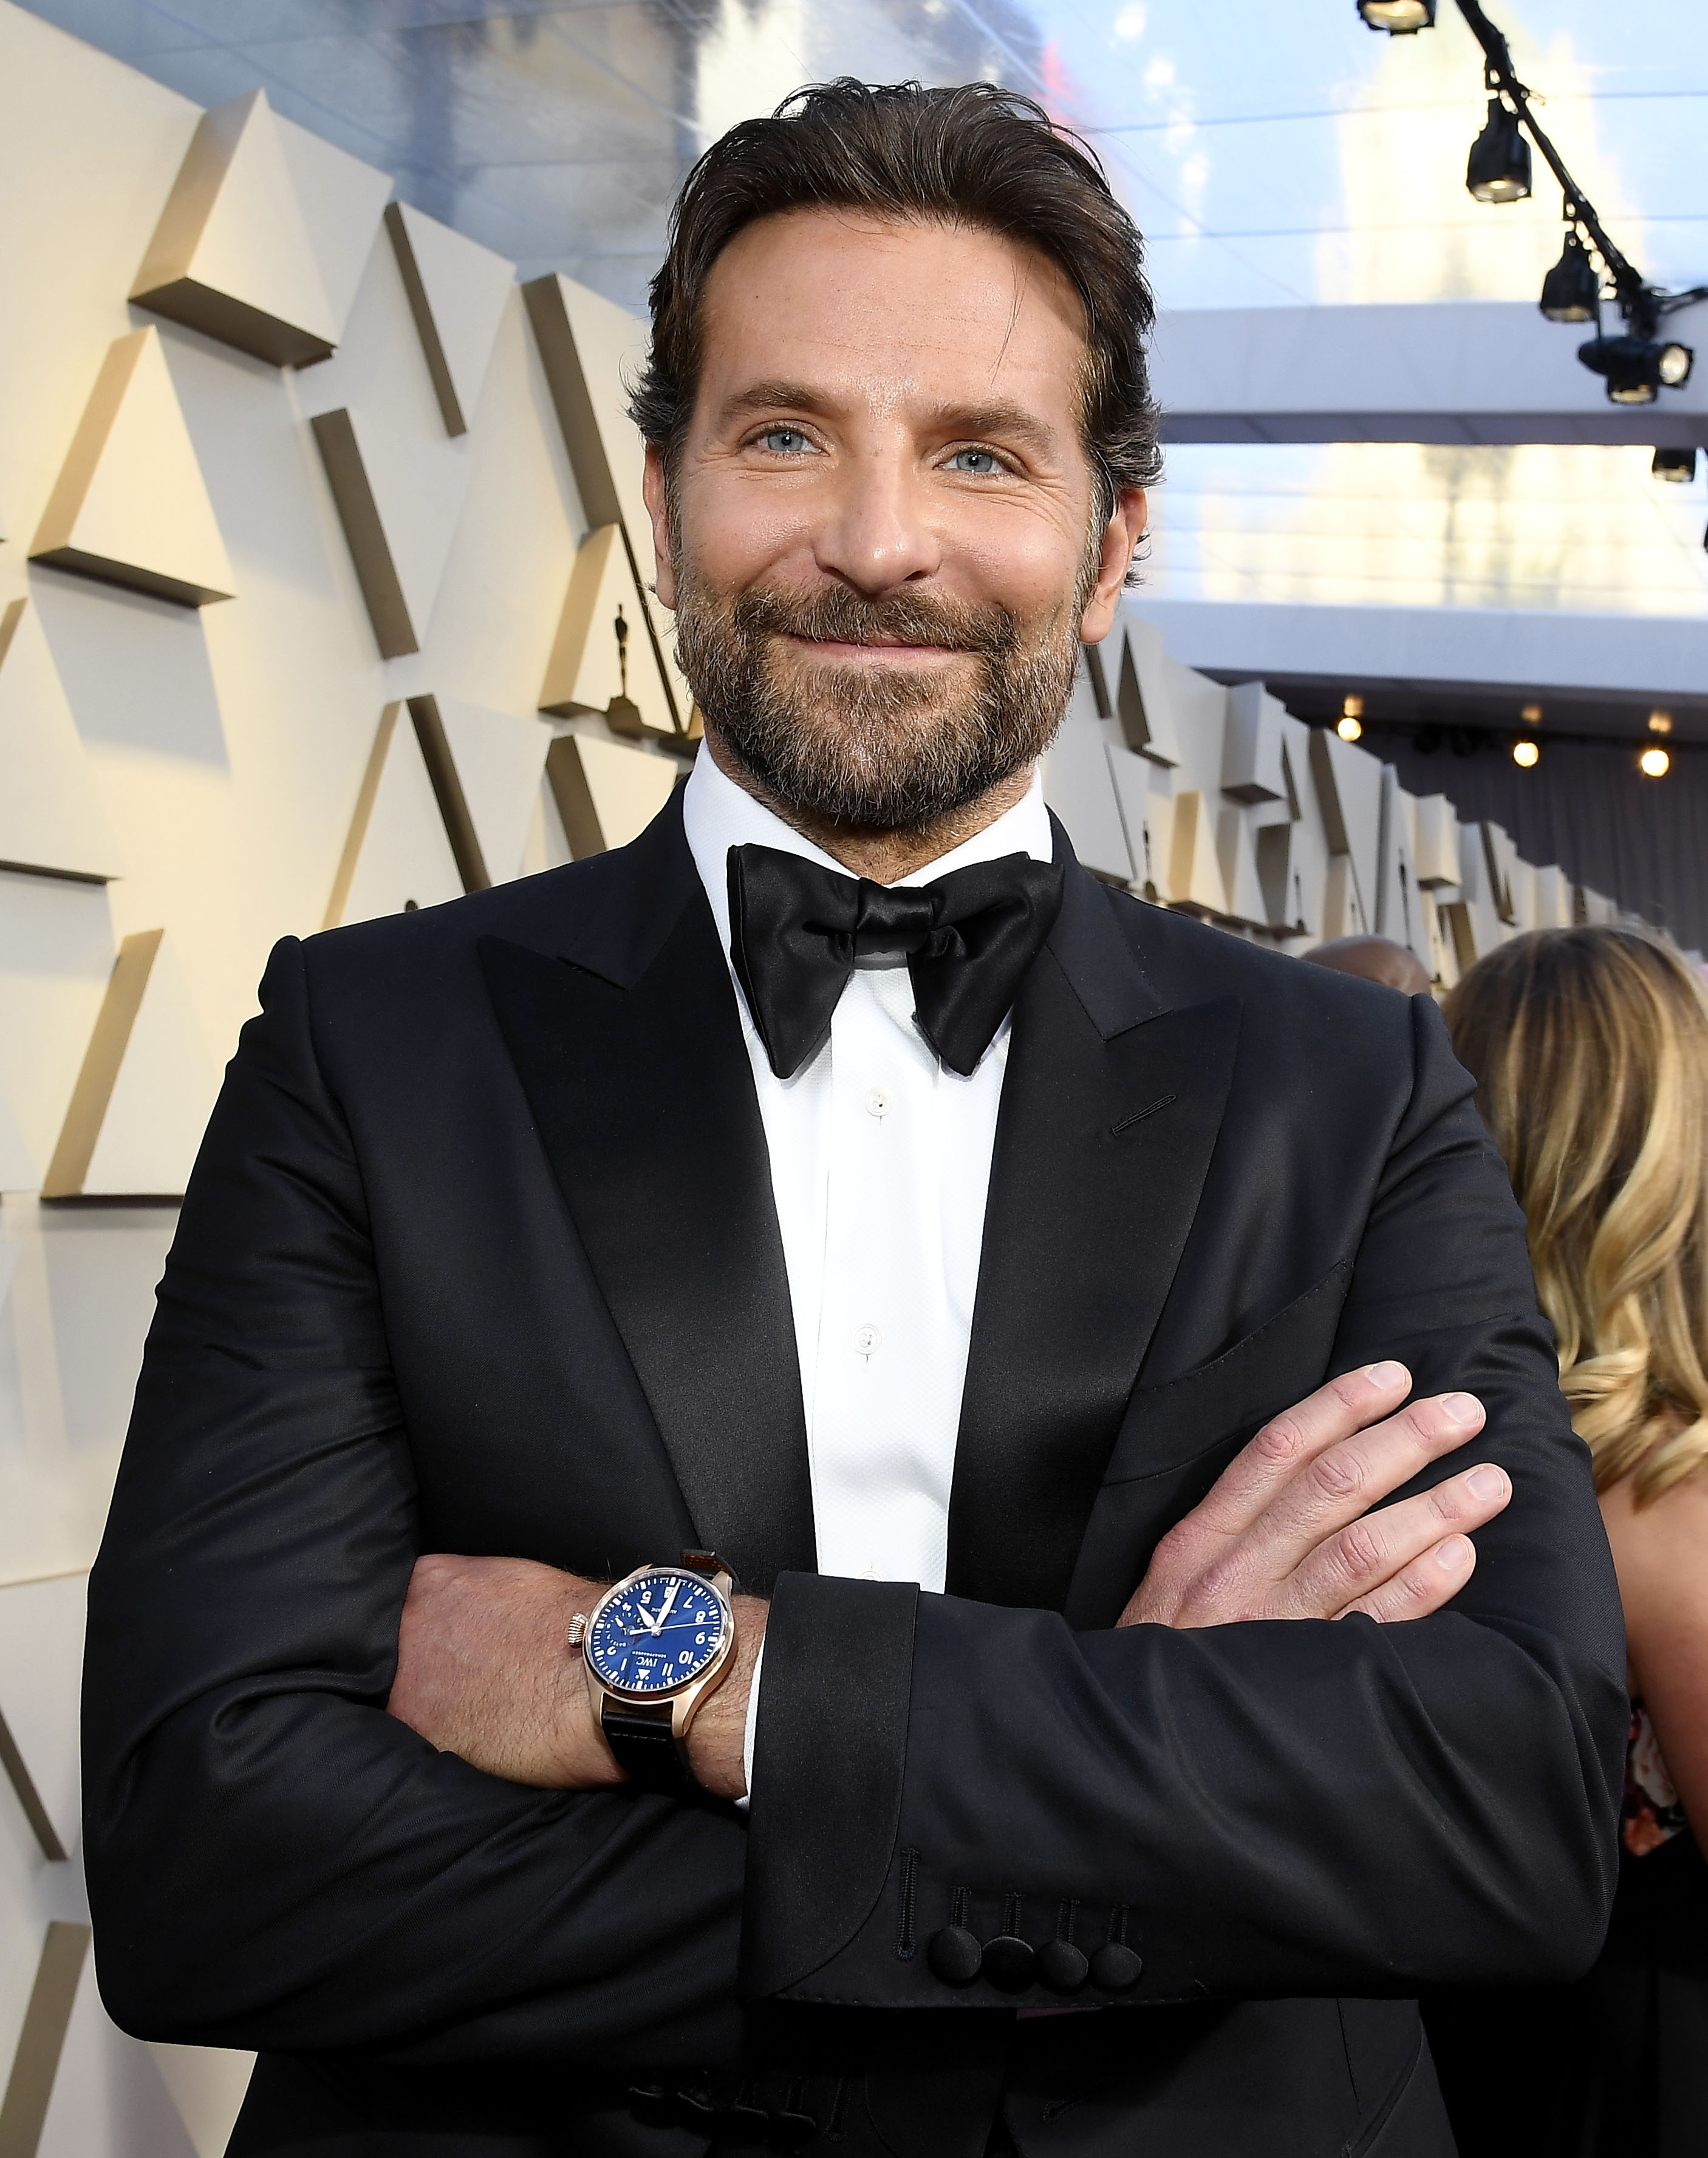 LIST: 3 well-dressed men straight up wrist flexing at the ...